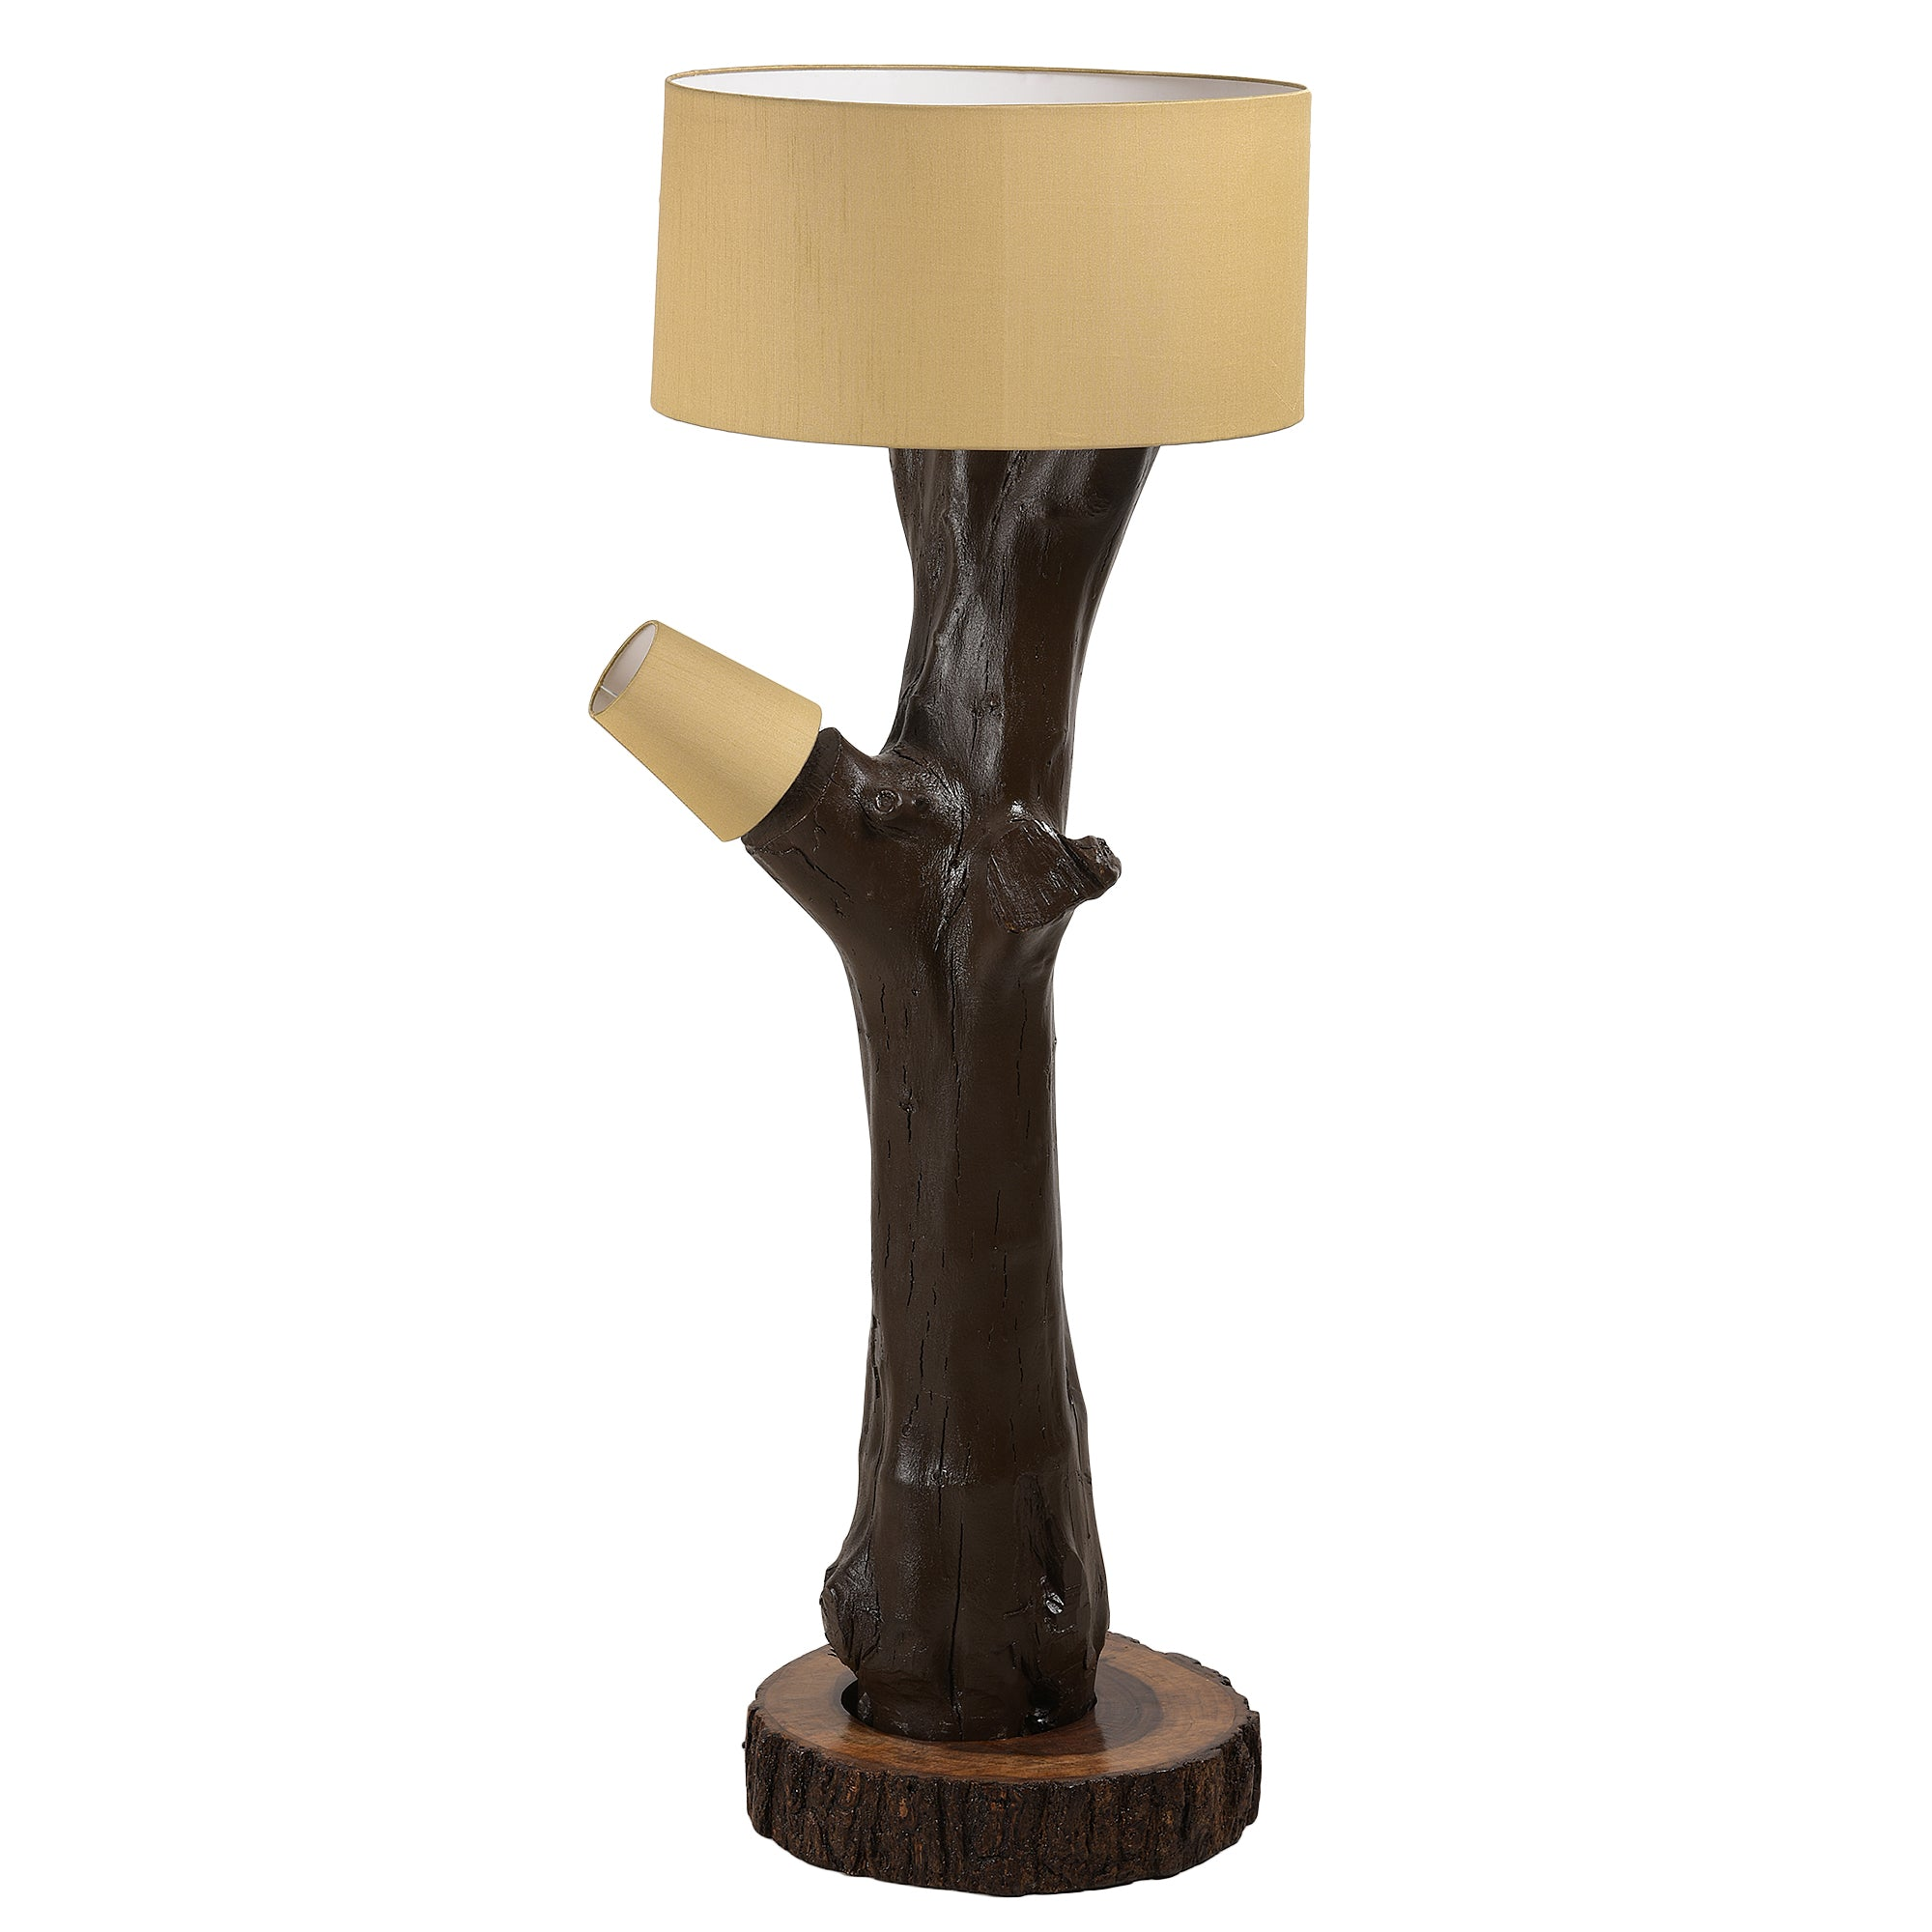 'Tiaga' Floor Lamp